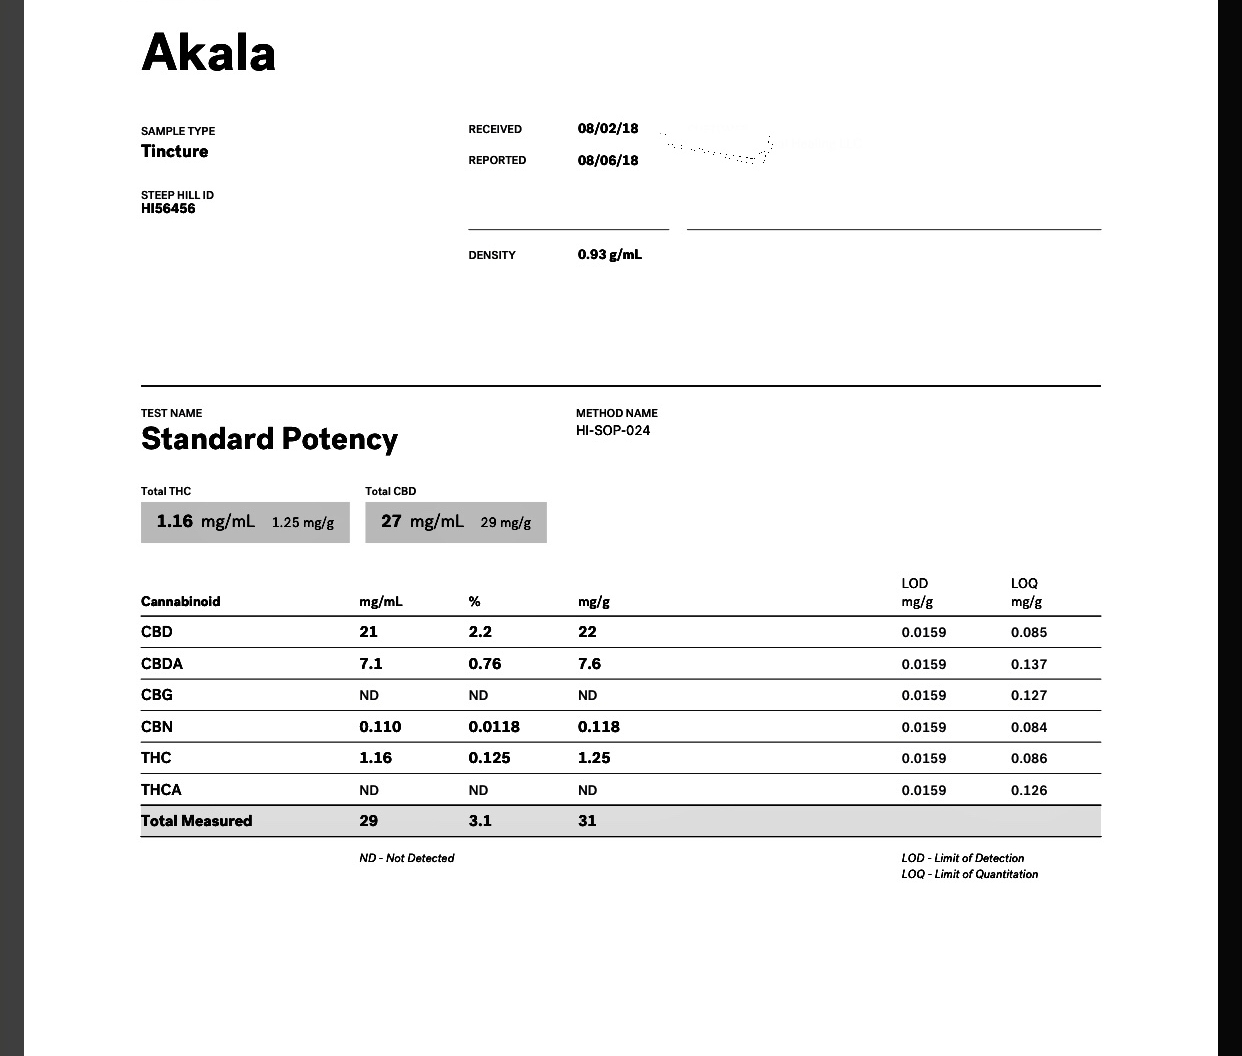 Our AKALA series which includes AKALA,TURMERIC AKALA, KAVA AKALA, TERPENE AKALA, ALL ARE BELOW THE .3% THC LEVEL REQUIRED BY THE FEDERAL GOVERNMENT. ITS AT .1% SO NO WORRIES ABOUT GETTING ANY HIGH. LEGAL IN ALL 50 STATES, AND MOST OF THE WORLD. ALOHA FROM MAUI CBD